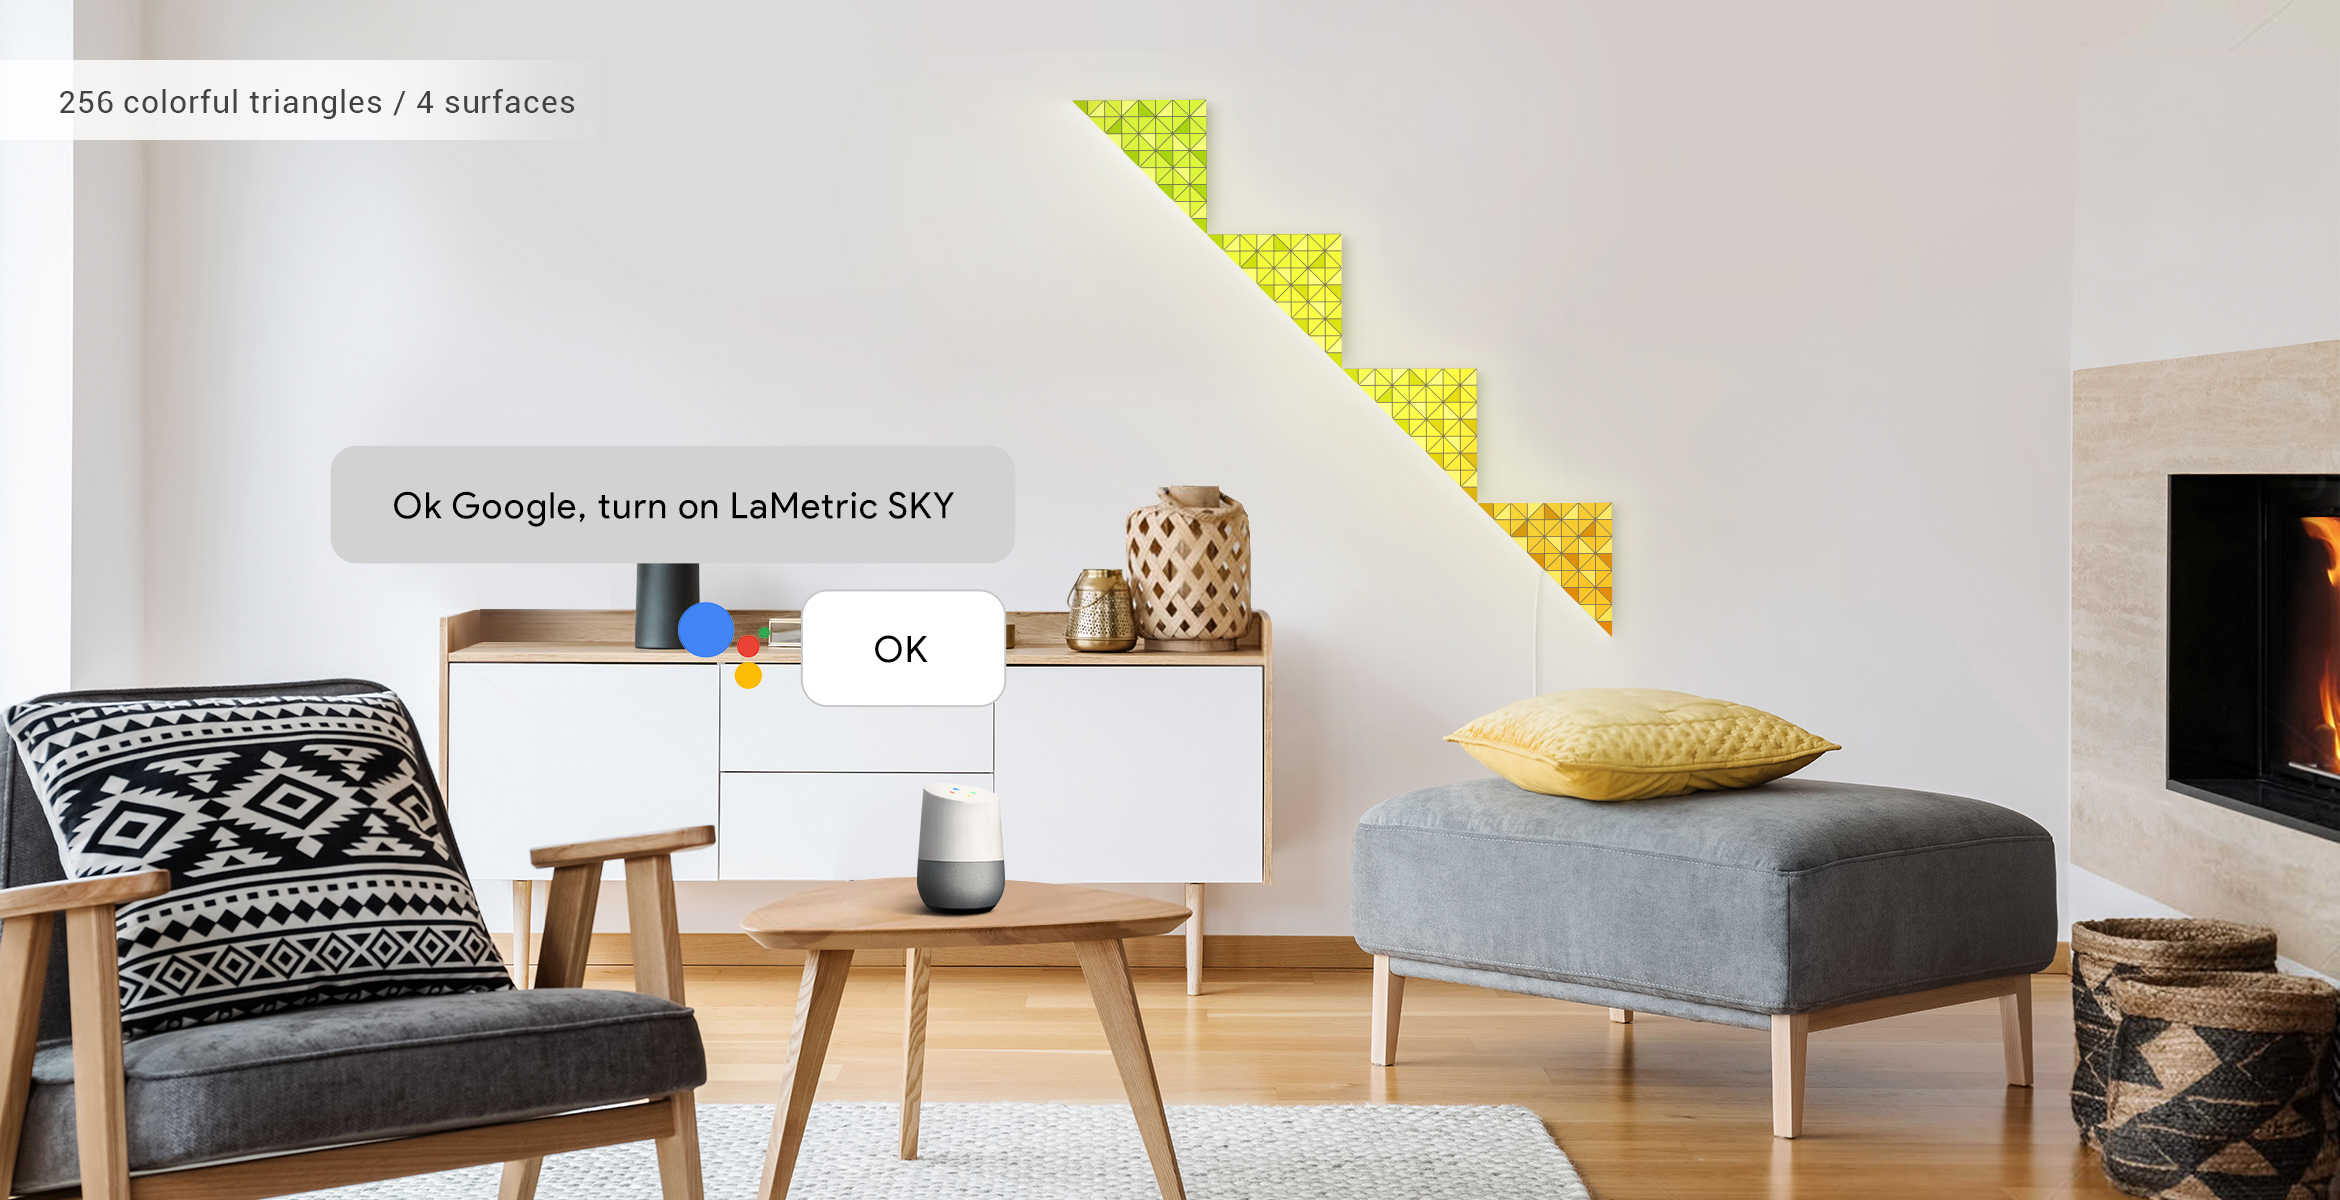 Voice control of LaMetric SKY smart light surfaces, assembled into the shape of the stairs, via Google Assistant